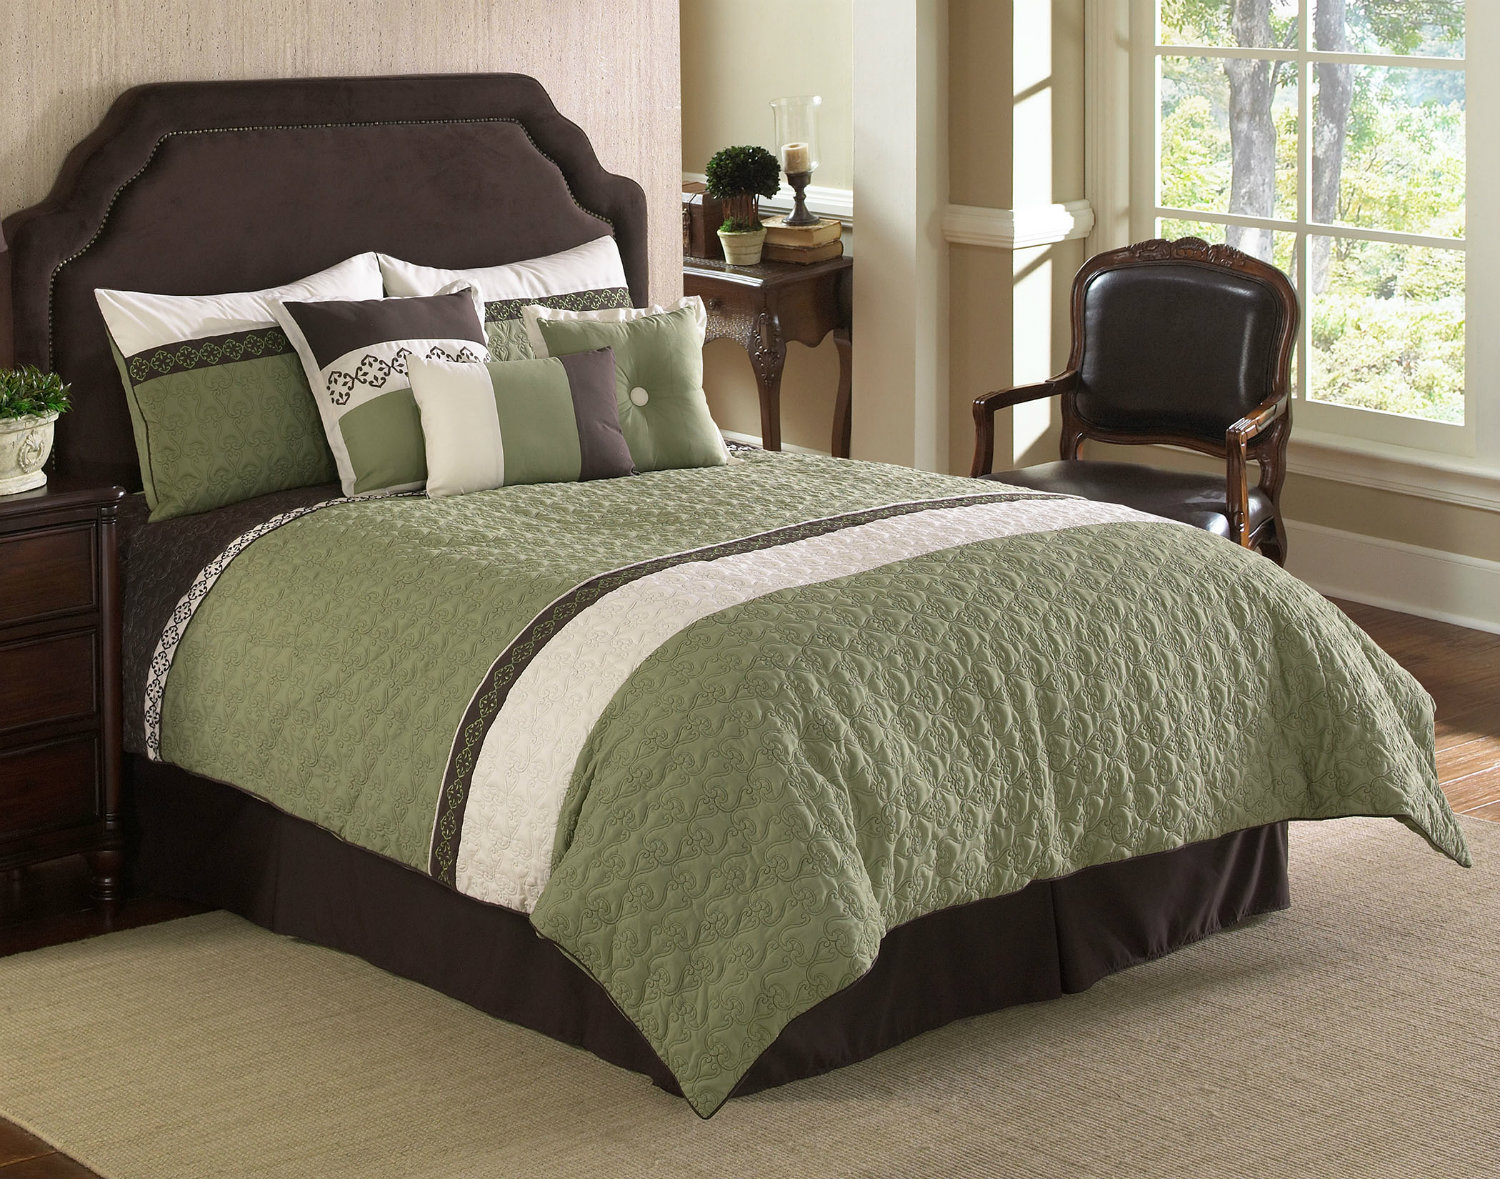 Olive Green Comforter: Frontera By Hallmart Collection By Hallmart Collection